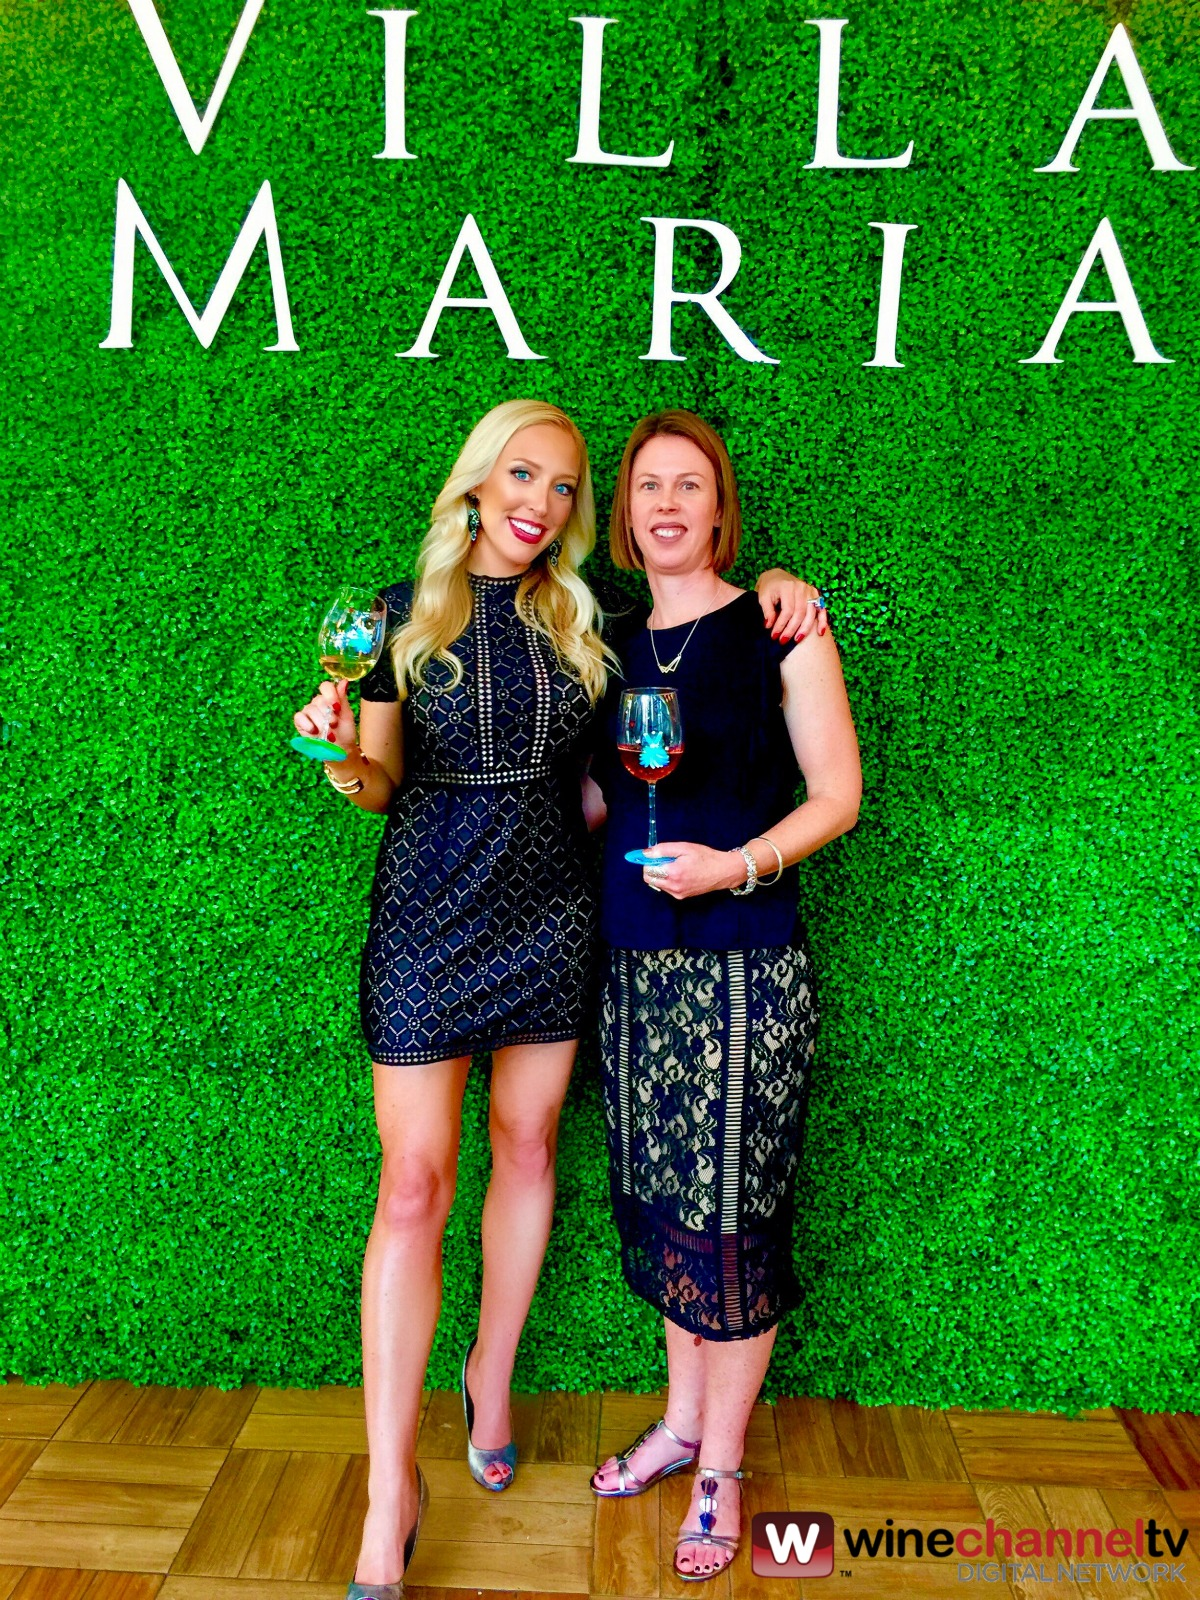 """Watch Wine Channel TV CEO  Jessica Altieri and  Villa Maria Winemaker Helen Morrison at the Open Another World ™ event in Chicago. Jessica and Helen talk about the newest addition to the award winning wines of Villa Maria – Bubbly Sauvignon Blanc.  Villa Maria was formed back in 1961 by Sir George Fistonich on 1 acre of land leased from his father and is still managed and owned by Sir George today. He has grown it from 1 brand to 9 key brands, 120 products across 60 markets. Key markets are USA, UK, New Zealand, Australia, Canada, Europe and Asia.  From the Villa Maria Open Another World™ press release:  """"The campaign will kick off with a tour from Los Angeles to Miami with events taking place Jun. 7 through Aug. 4 in various cities. In keeping with the brand's history of marching to the beat of their own drum—for example, Villa Maria was the first major New Zealand winery to convert entirely to screwcap closures in 2001—the tour won't just be a typical wine tasting. The winery has retained a troupe of improvisational actors to tell the story of Villa Maria and founder Sir George Fistonich's rise from a one man operation to a global brand in just five decades, overcoming some pretty incredible odds along the way.  The theatrical performance, """"Of Grapes & Grit: The Not Completely Apocryphal Story of Sir George Fistonich, Villa Maria and the New Zealand Wine Industry"""" will highlight the many milestones in the winery's history and its contributions to the New Zealand wine industry overall, for which Sir George received a knighthood in 2009. The performance, which will include audience participation, will creatively explore key events such as when the winery went into receivership during the mid-1980s due to price wars and the actions taken by Sir George and his employees to save the winery; to the unique and sometimes quirky personalities behind the wine, including a winemaker who serenades Villa Maria's vines.  The Villa Maria story is one of passion. Each wine is cra"""